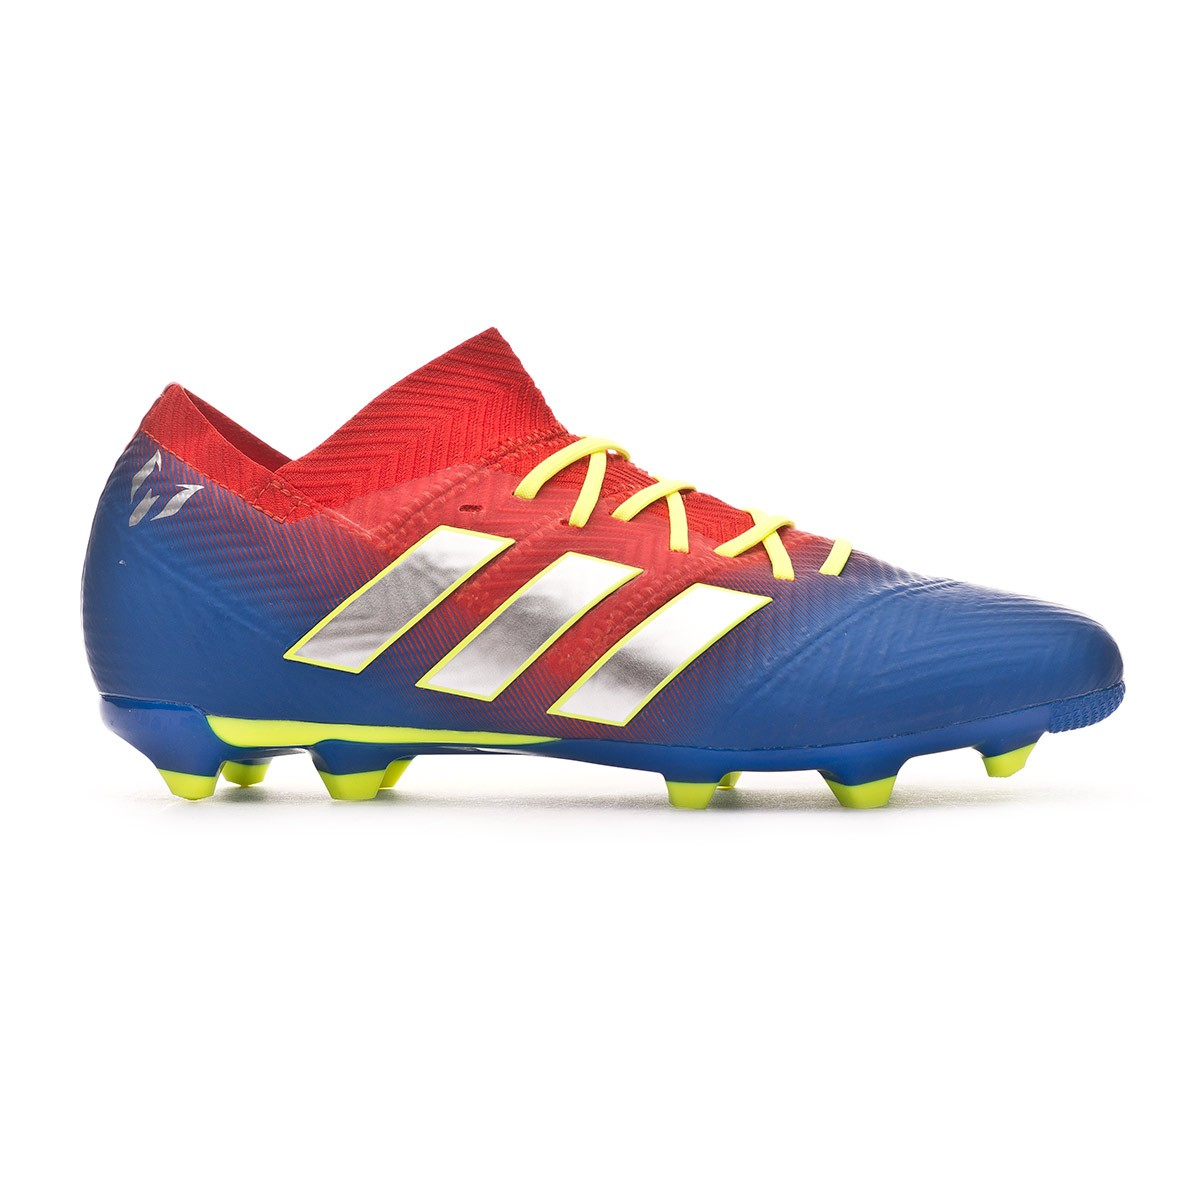 d2394233c Football Boots adidas Kids Nemeziz Messi 18.1 FG Active red-Silver  metallic-Football blue - Football store Fútbol Emotion